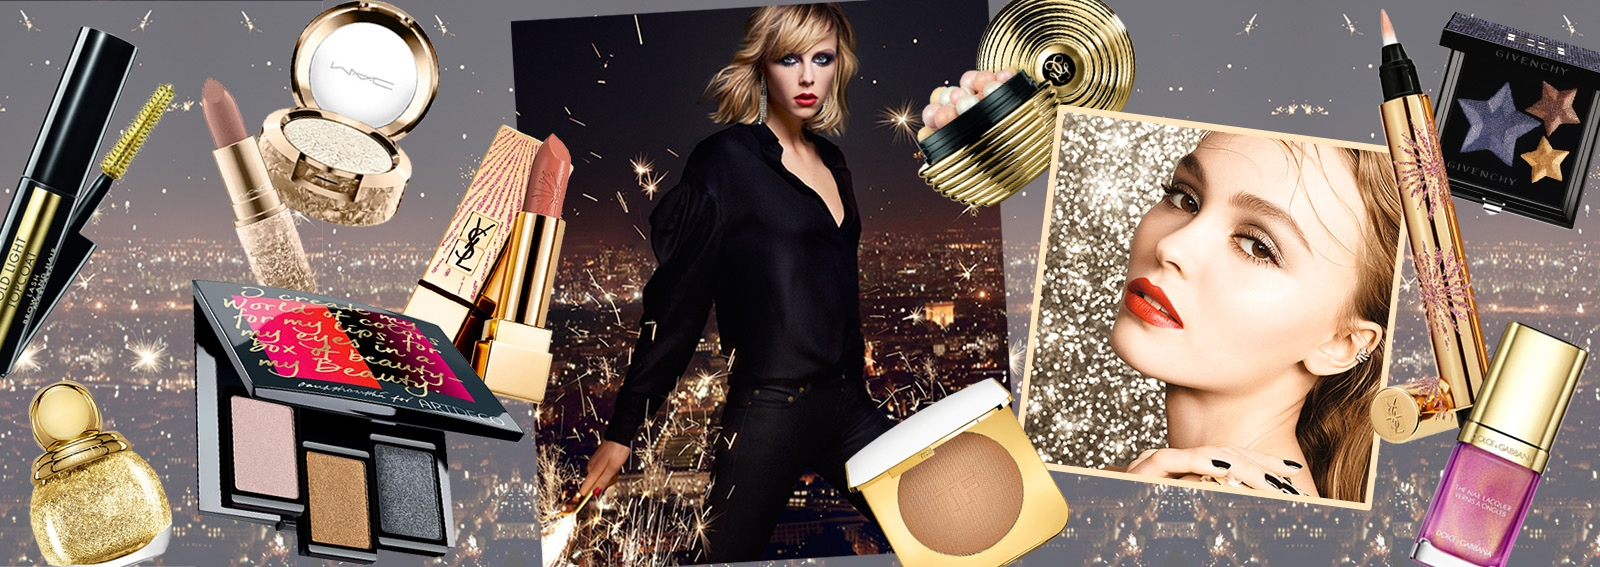 make up natale 2017 collezioni dior lancome chanel mac pupa collage_desktop